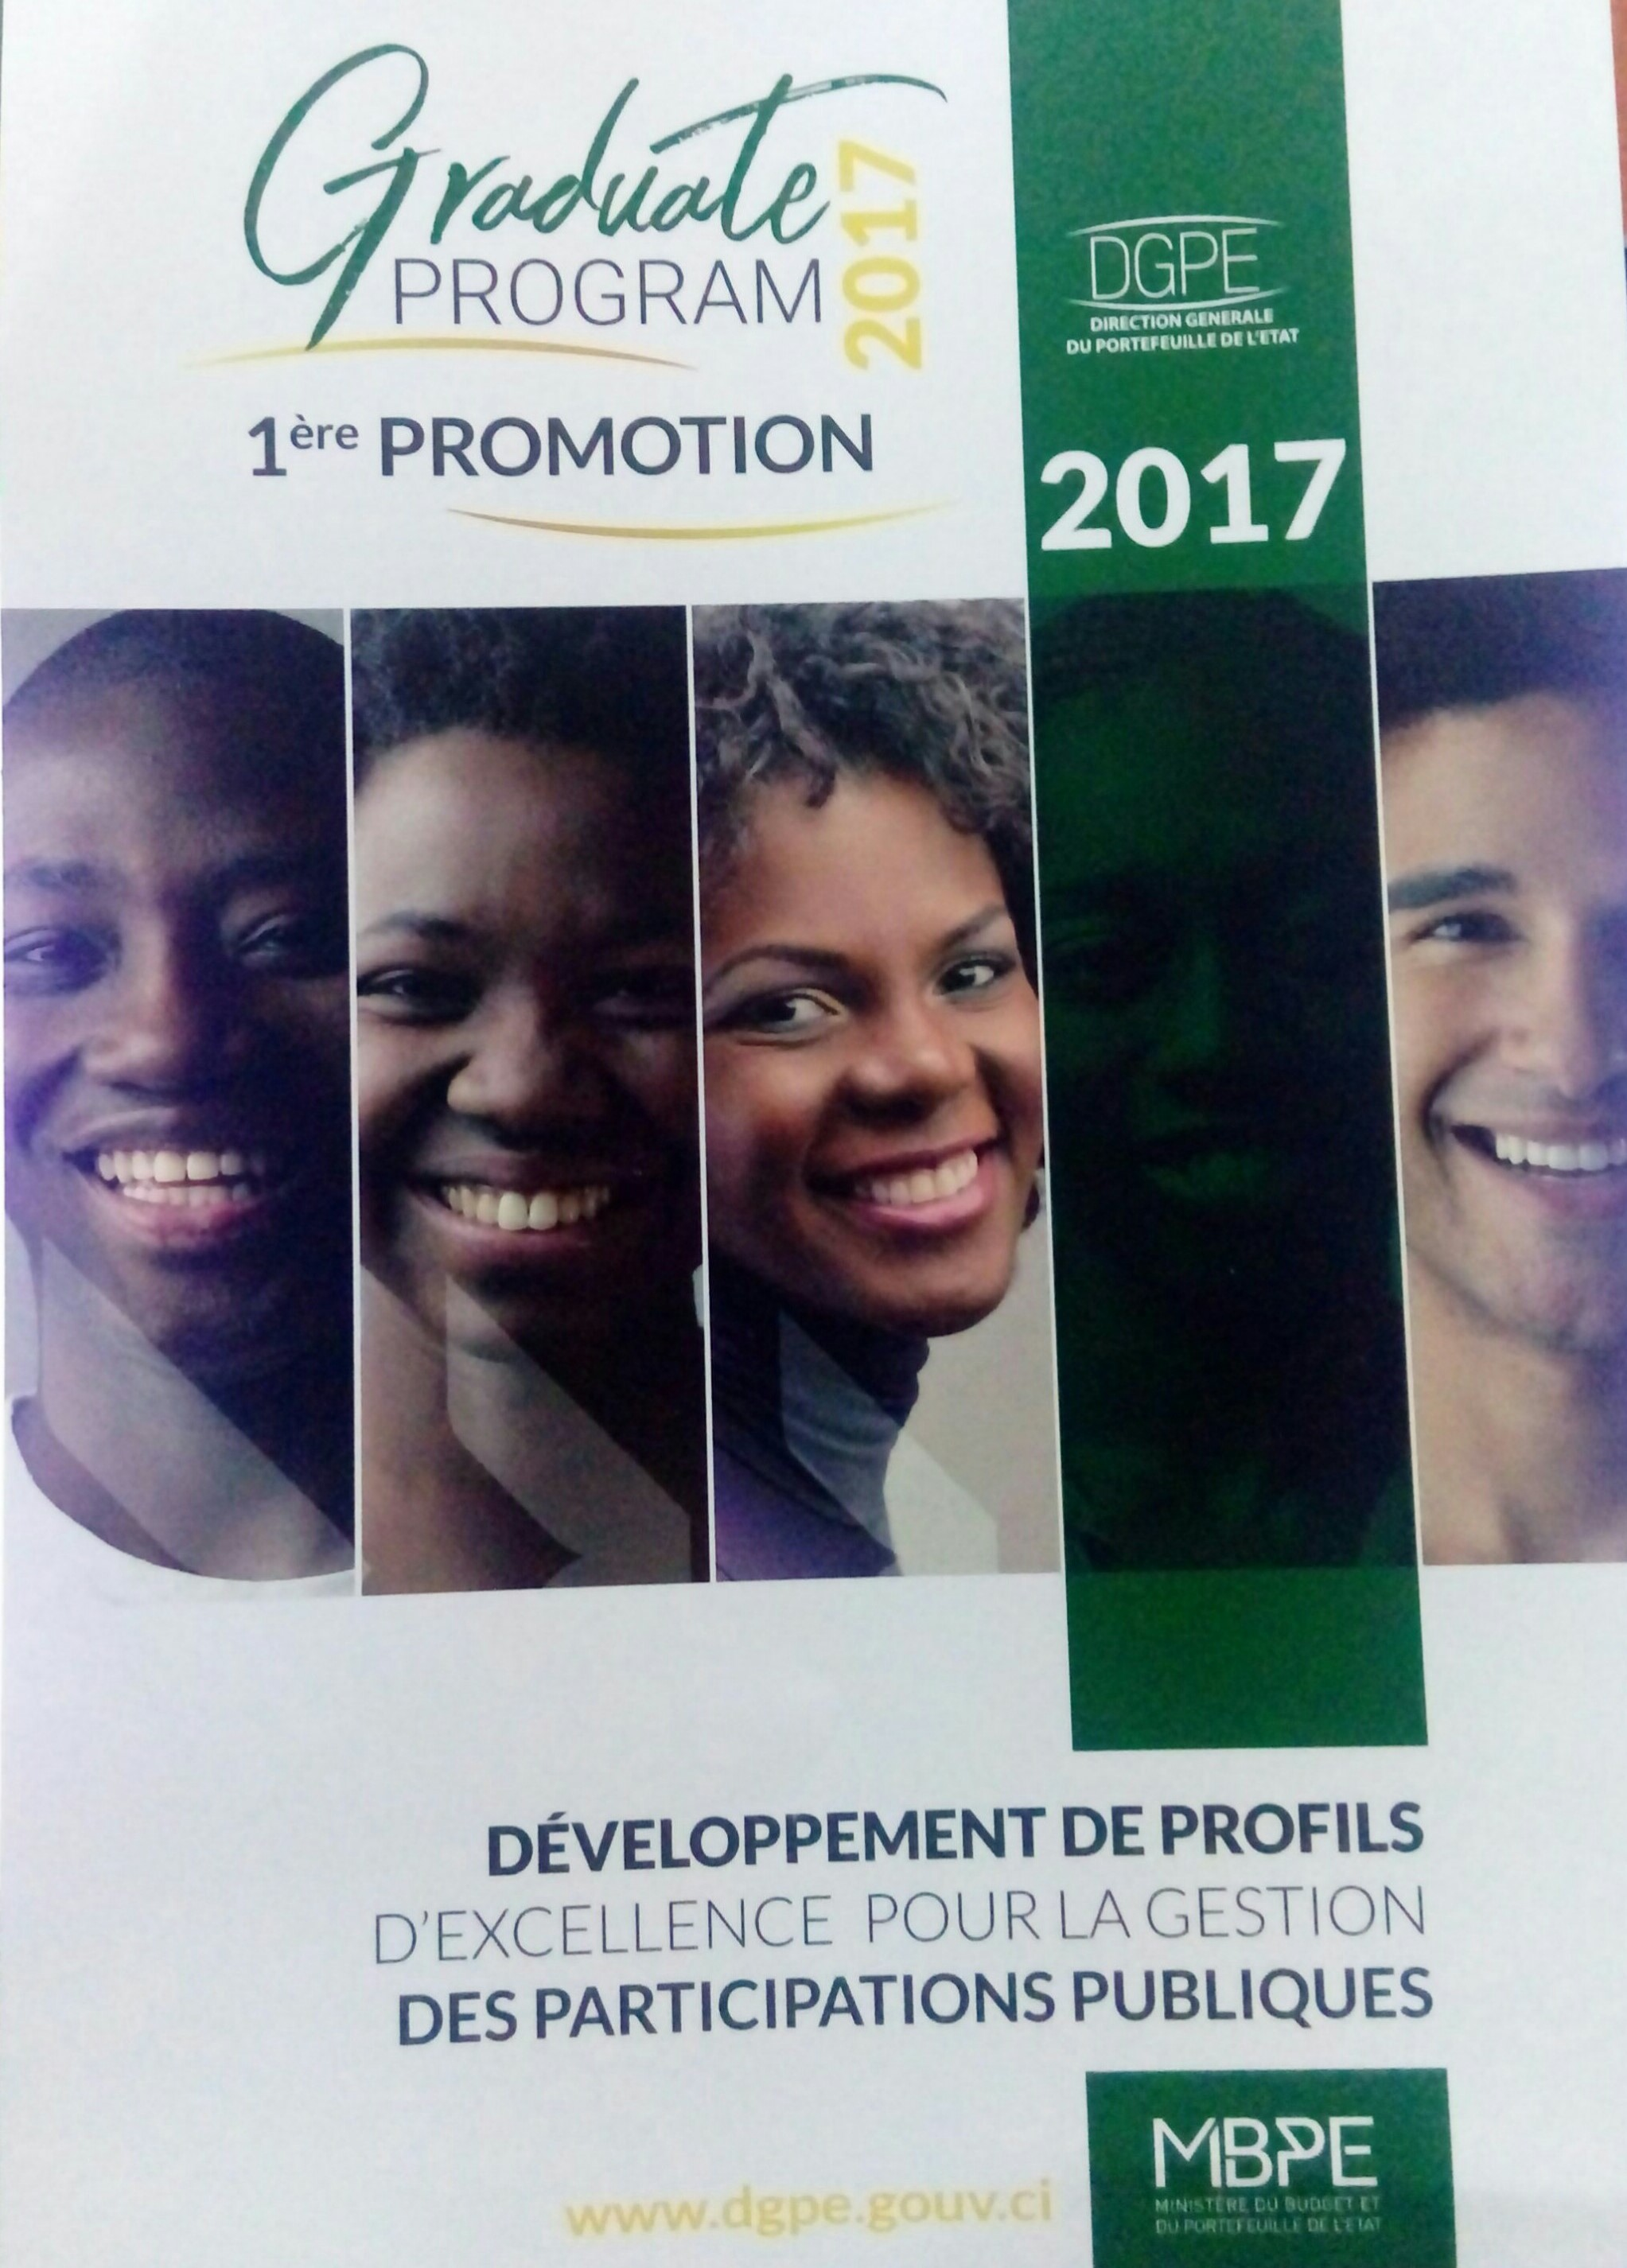 GRADUATE PROGRAM 1ère PROMOTION 2017